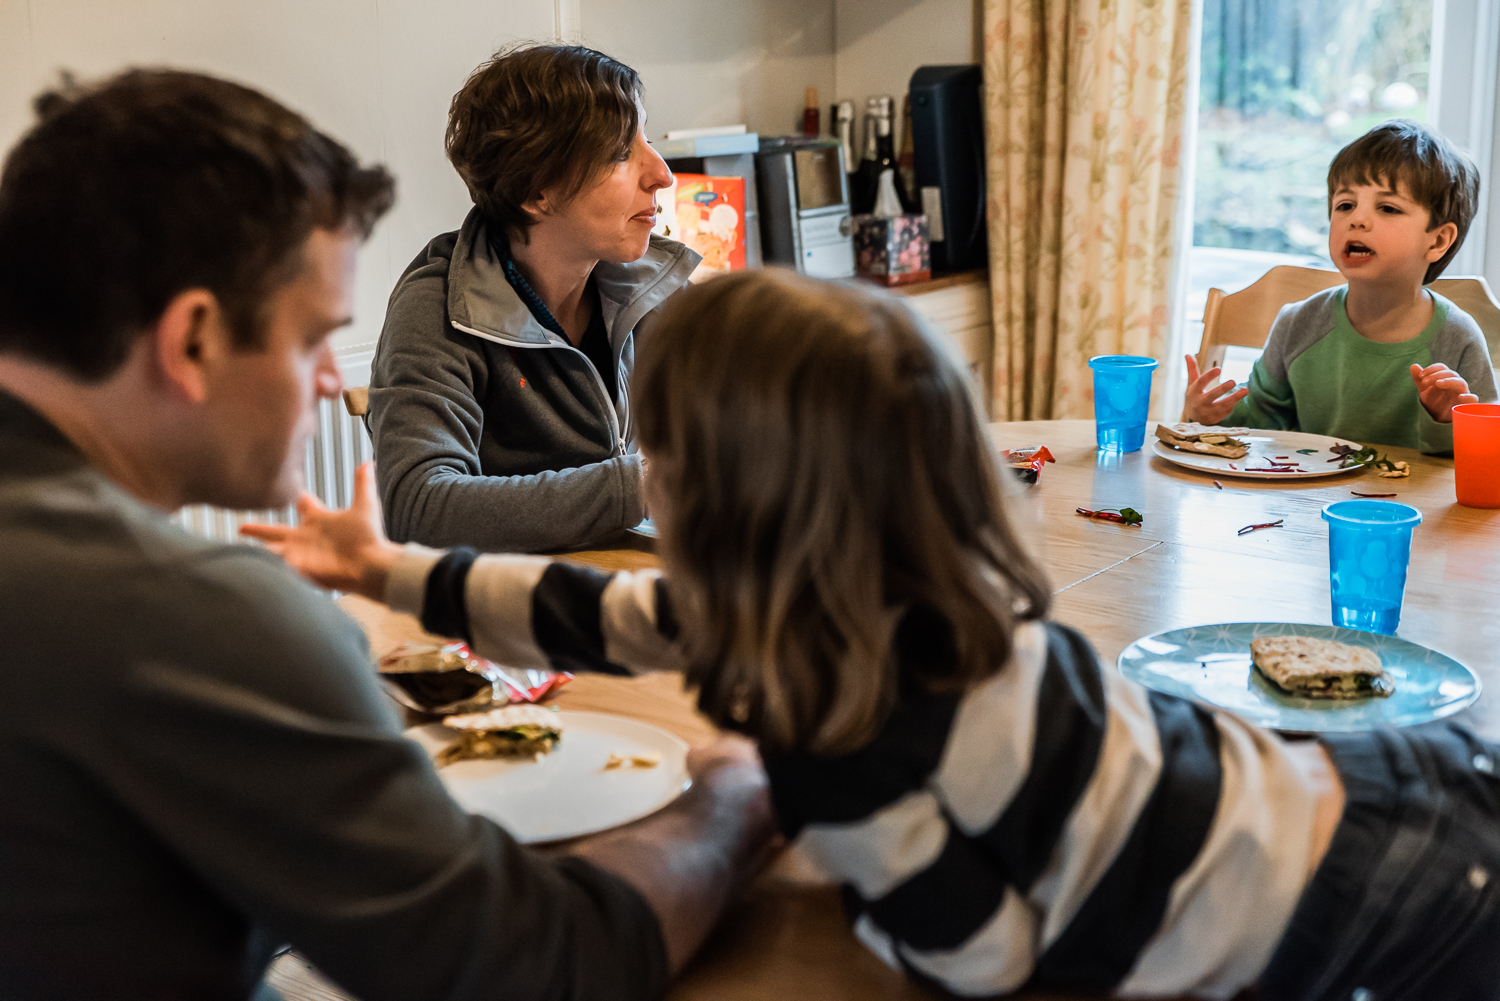 Copy of Conversations at the table during the family mealtime - Diana Ha